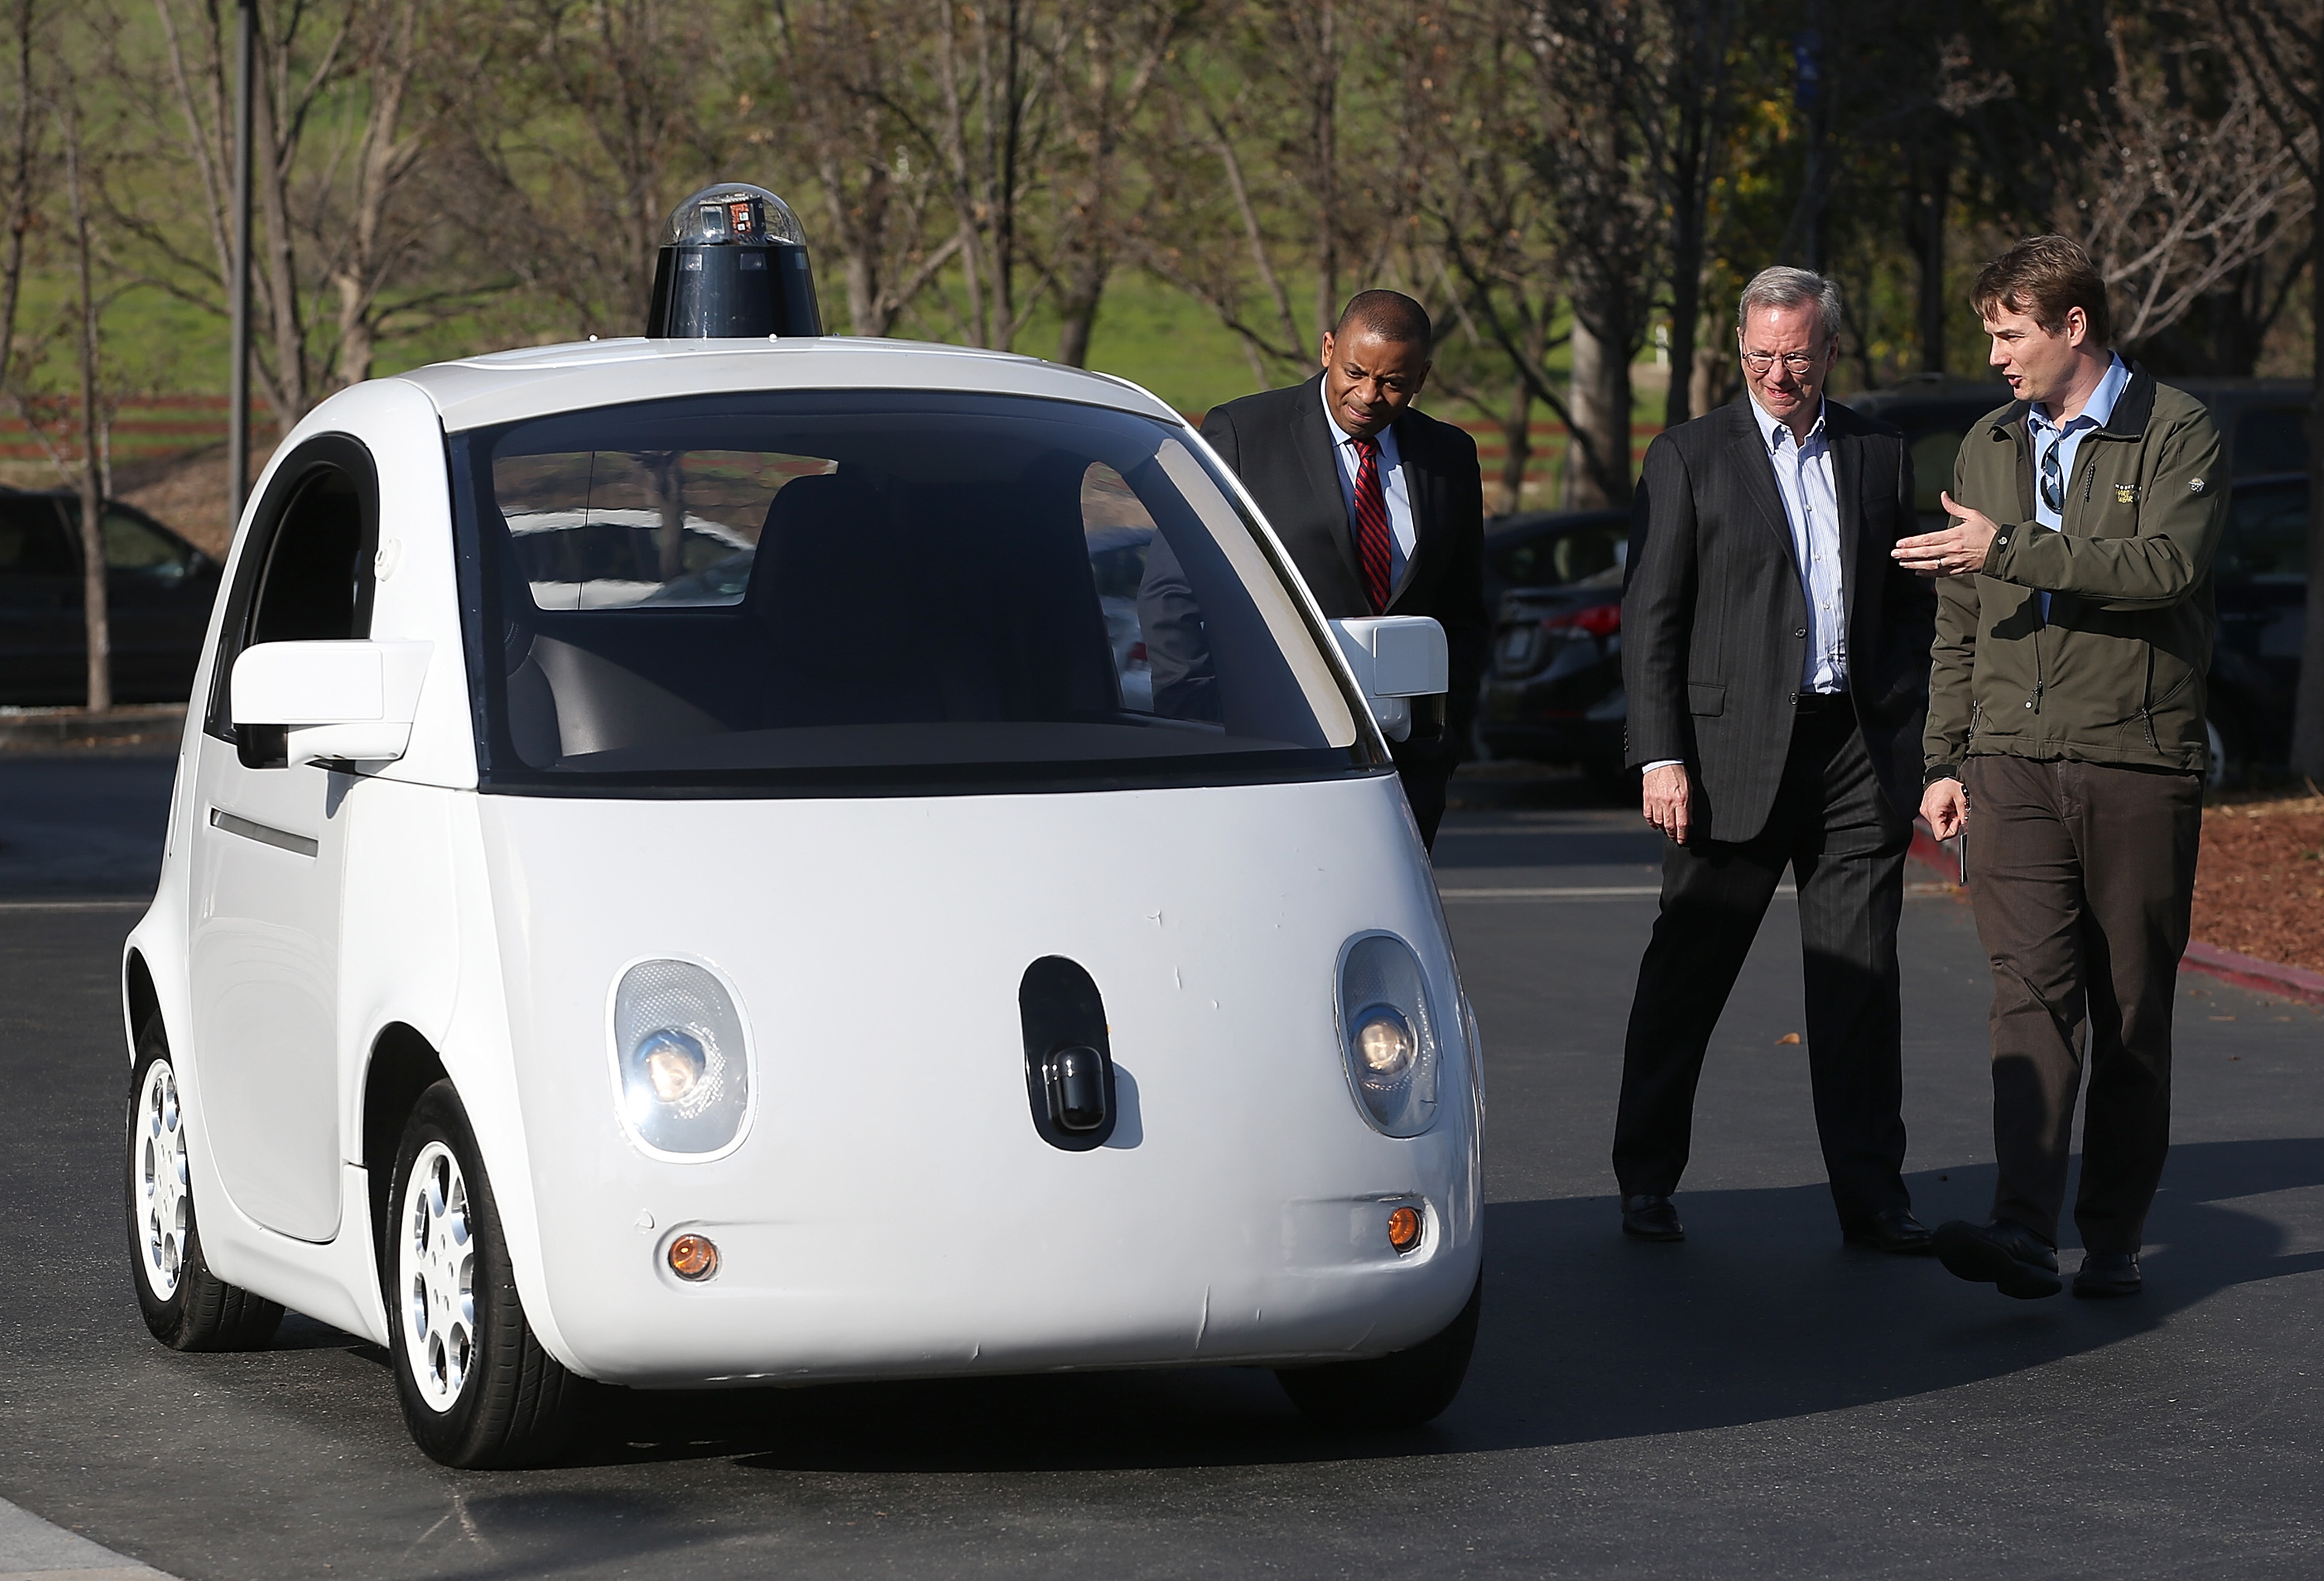 Google's Chris Urmson (R) shows a Google self-driving car to U.S. Transportation Secretary Anthony Foxx (L) and Google Chairman Eric Schmidt (C) at the Google headquarters on February 2, 2015 in Mountain View, California.